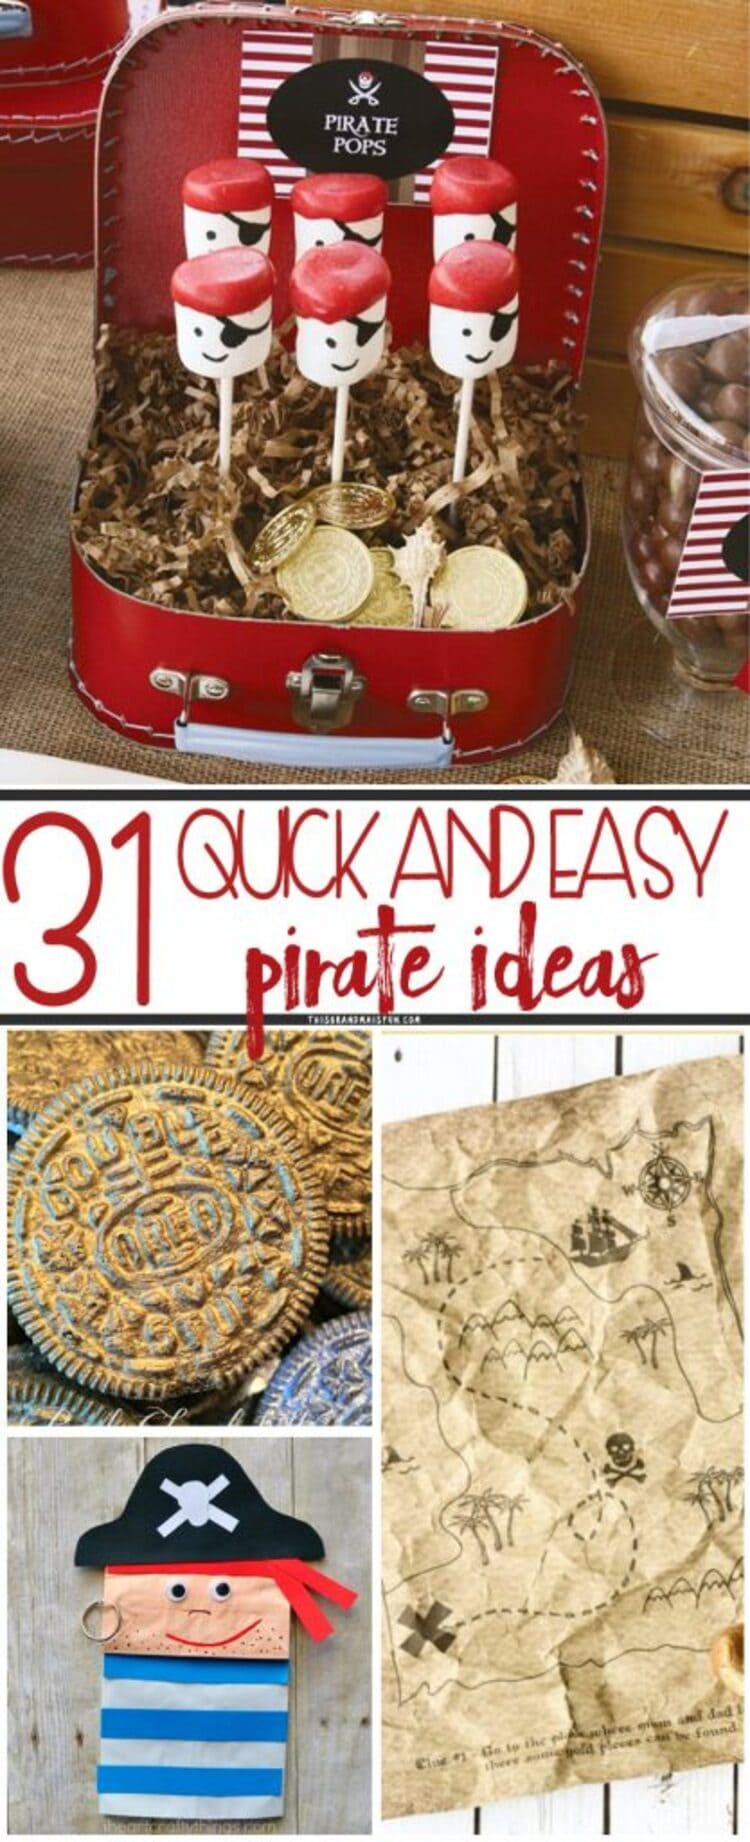 Collage images of pirate food, crafts and activities ideas